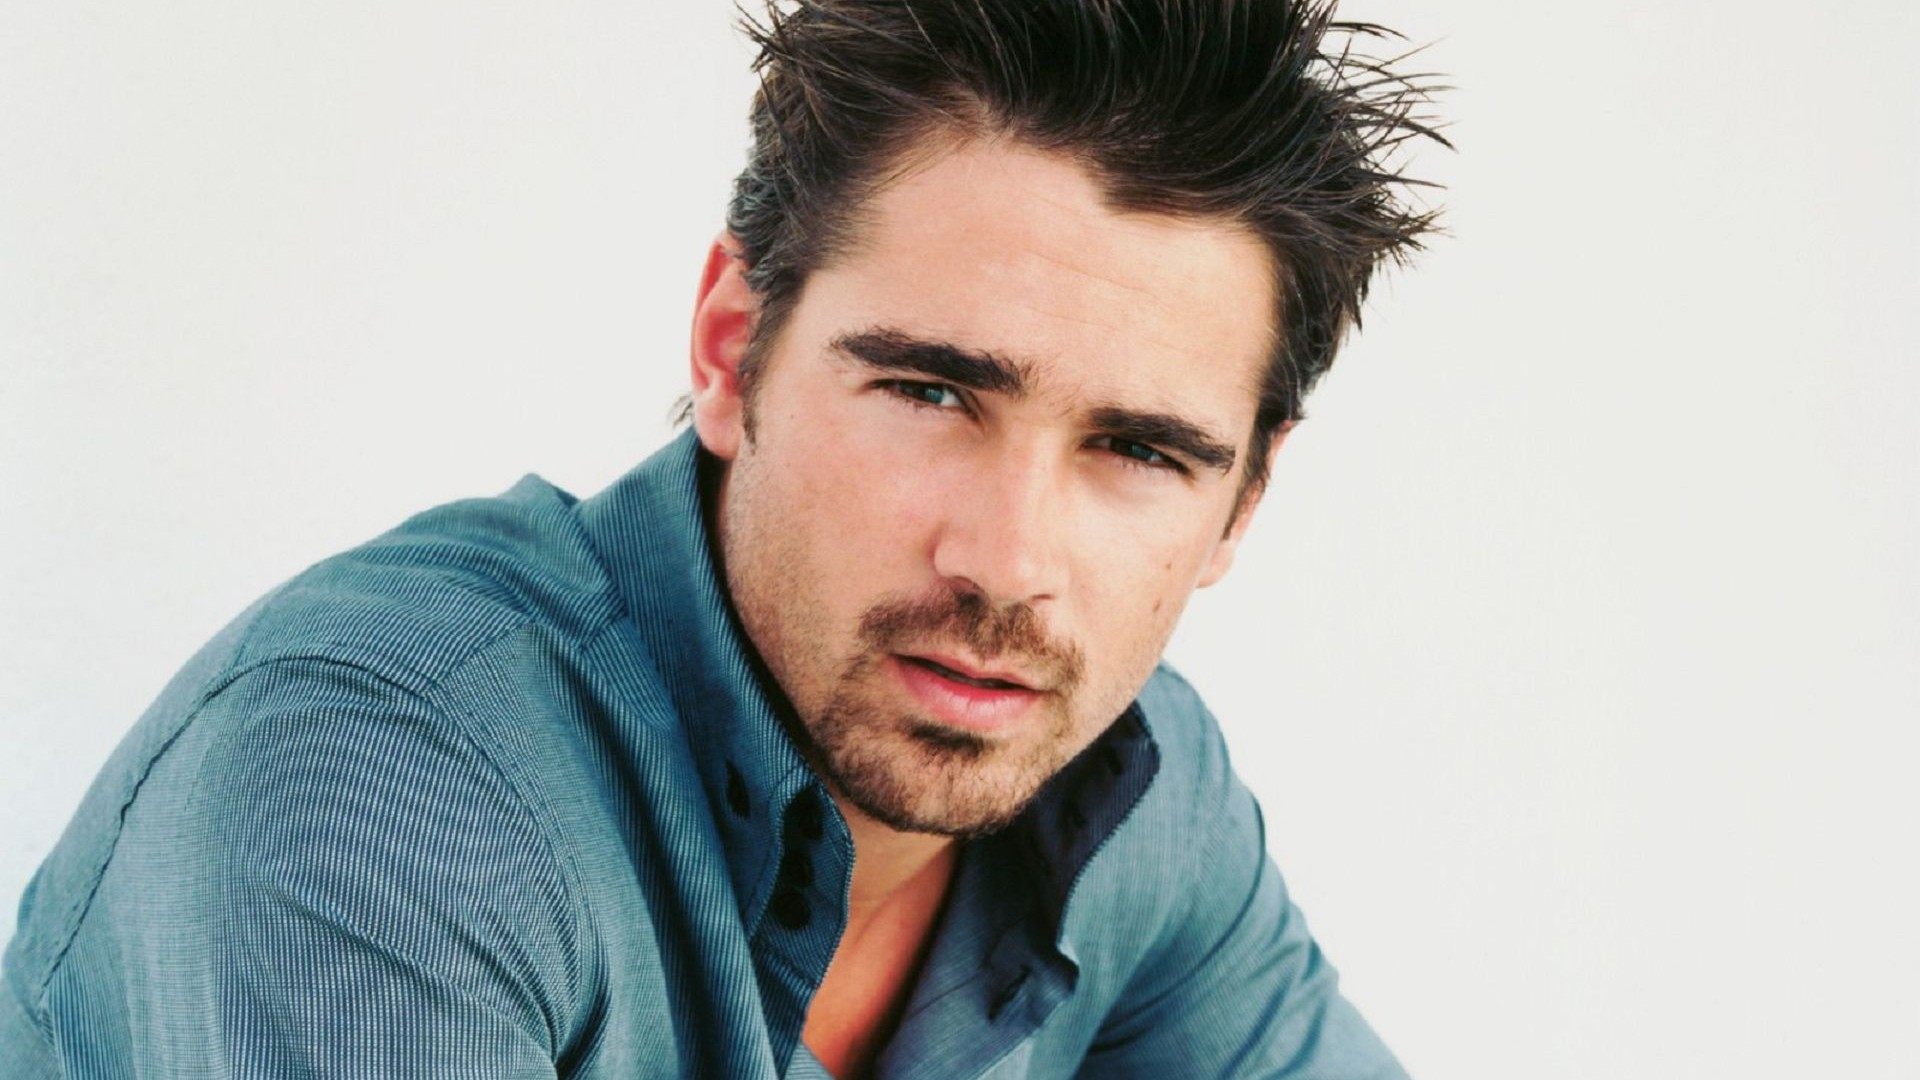 Colin Farrell Wallpapers   Wallpaper High Definition High Quality 1920x1080